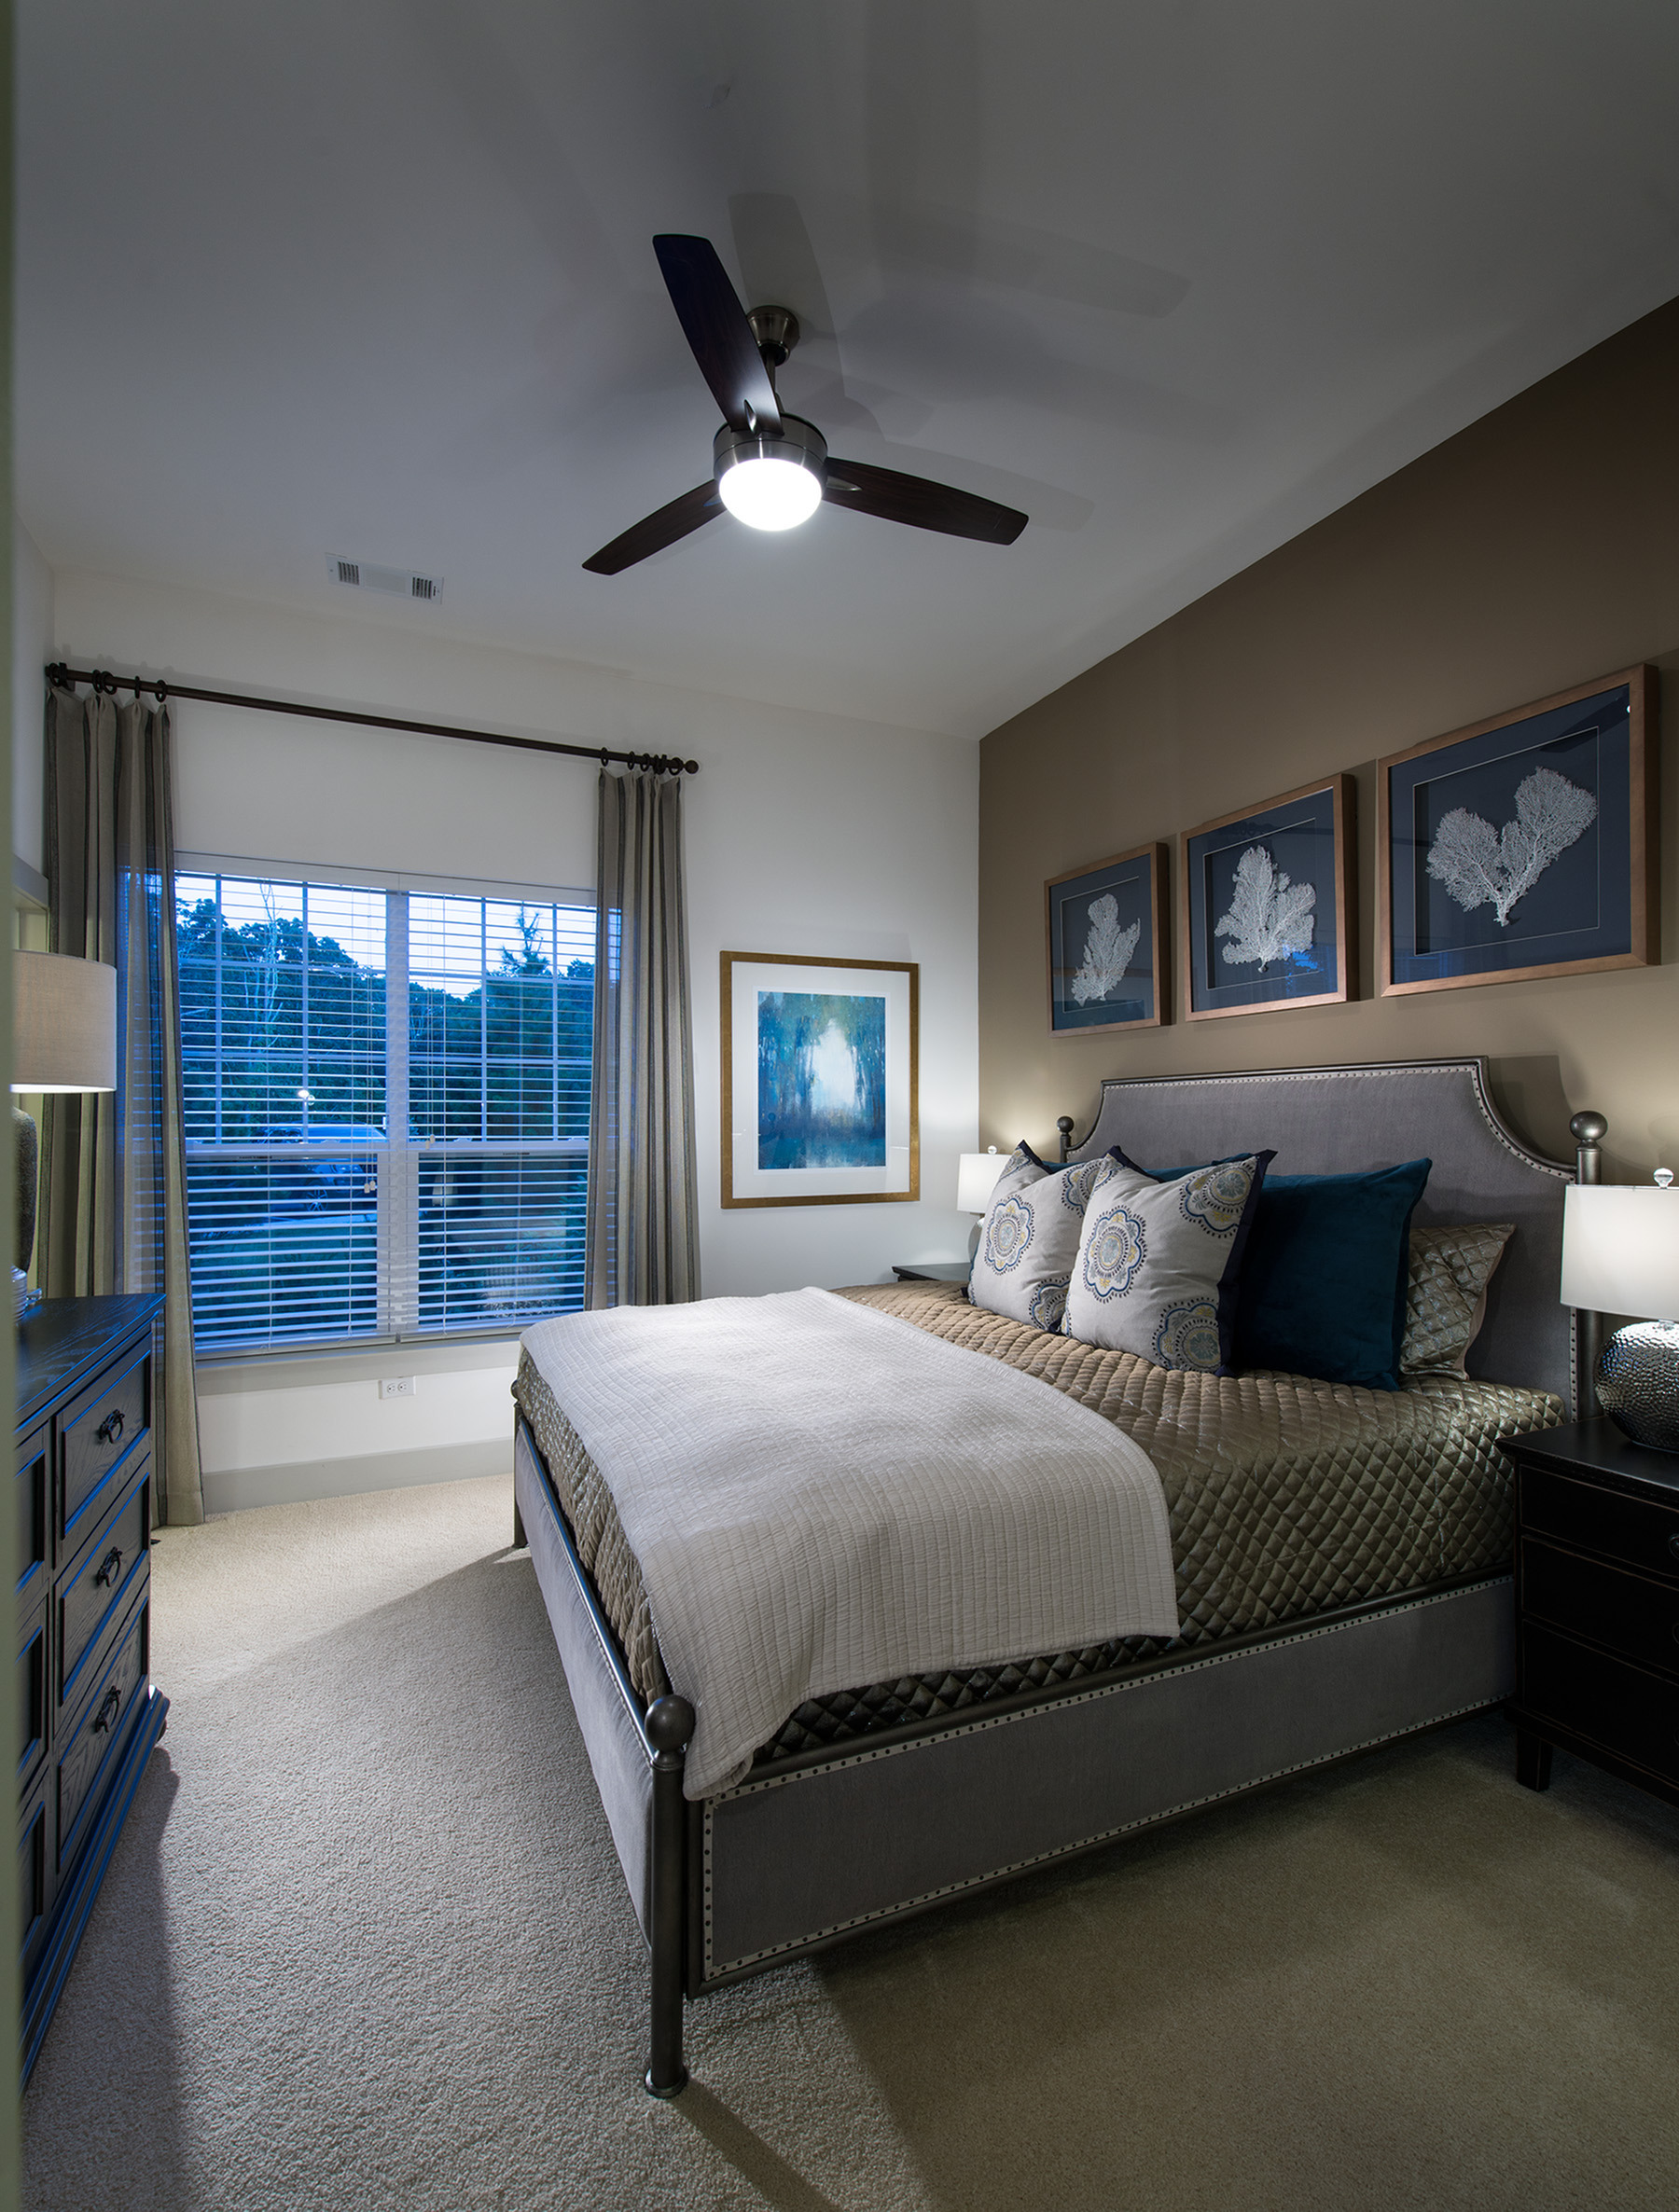 Image of Spacious bedrooms that accommodate king size beds for Hanover Foxborough